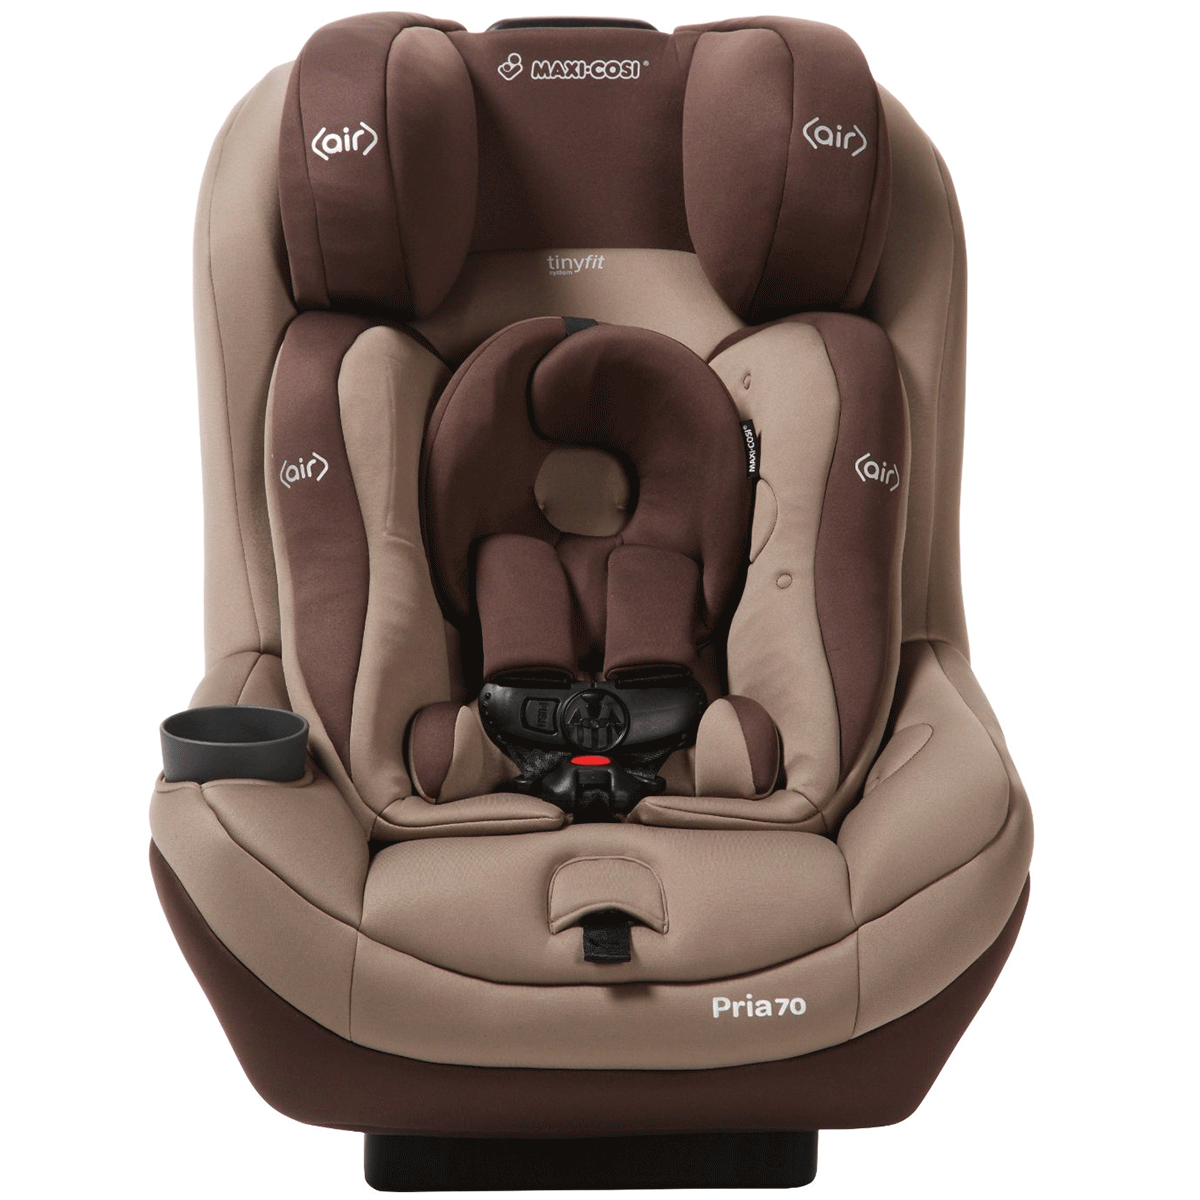 MAXI-COSI Pria 70 Convertible Car Seat with Tiny Fit 2014...